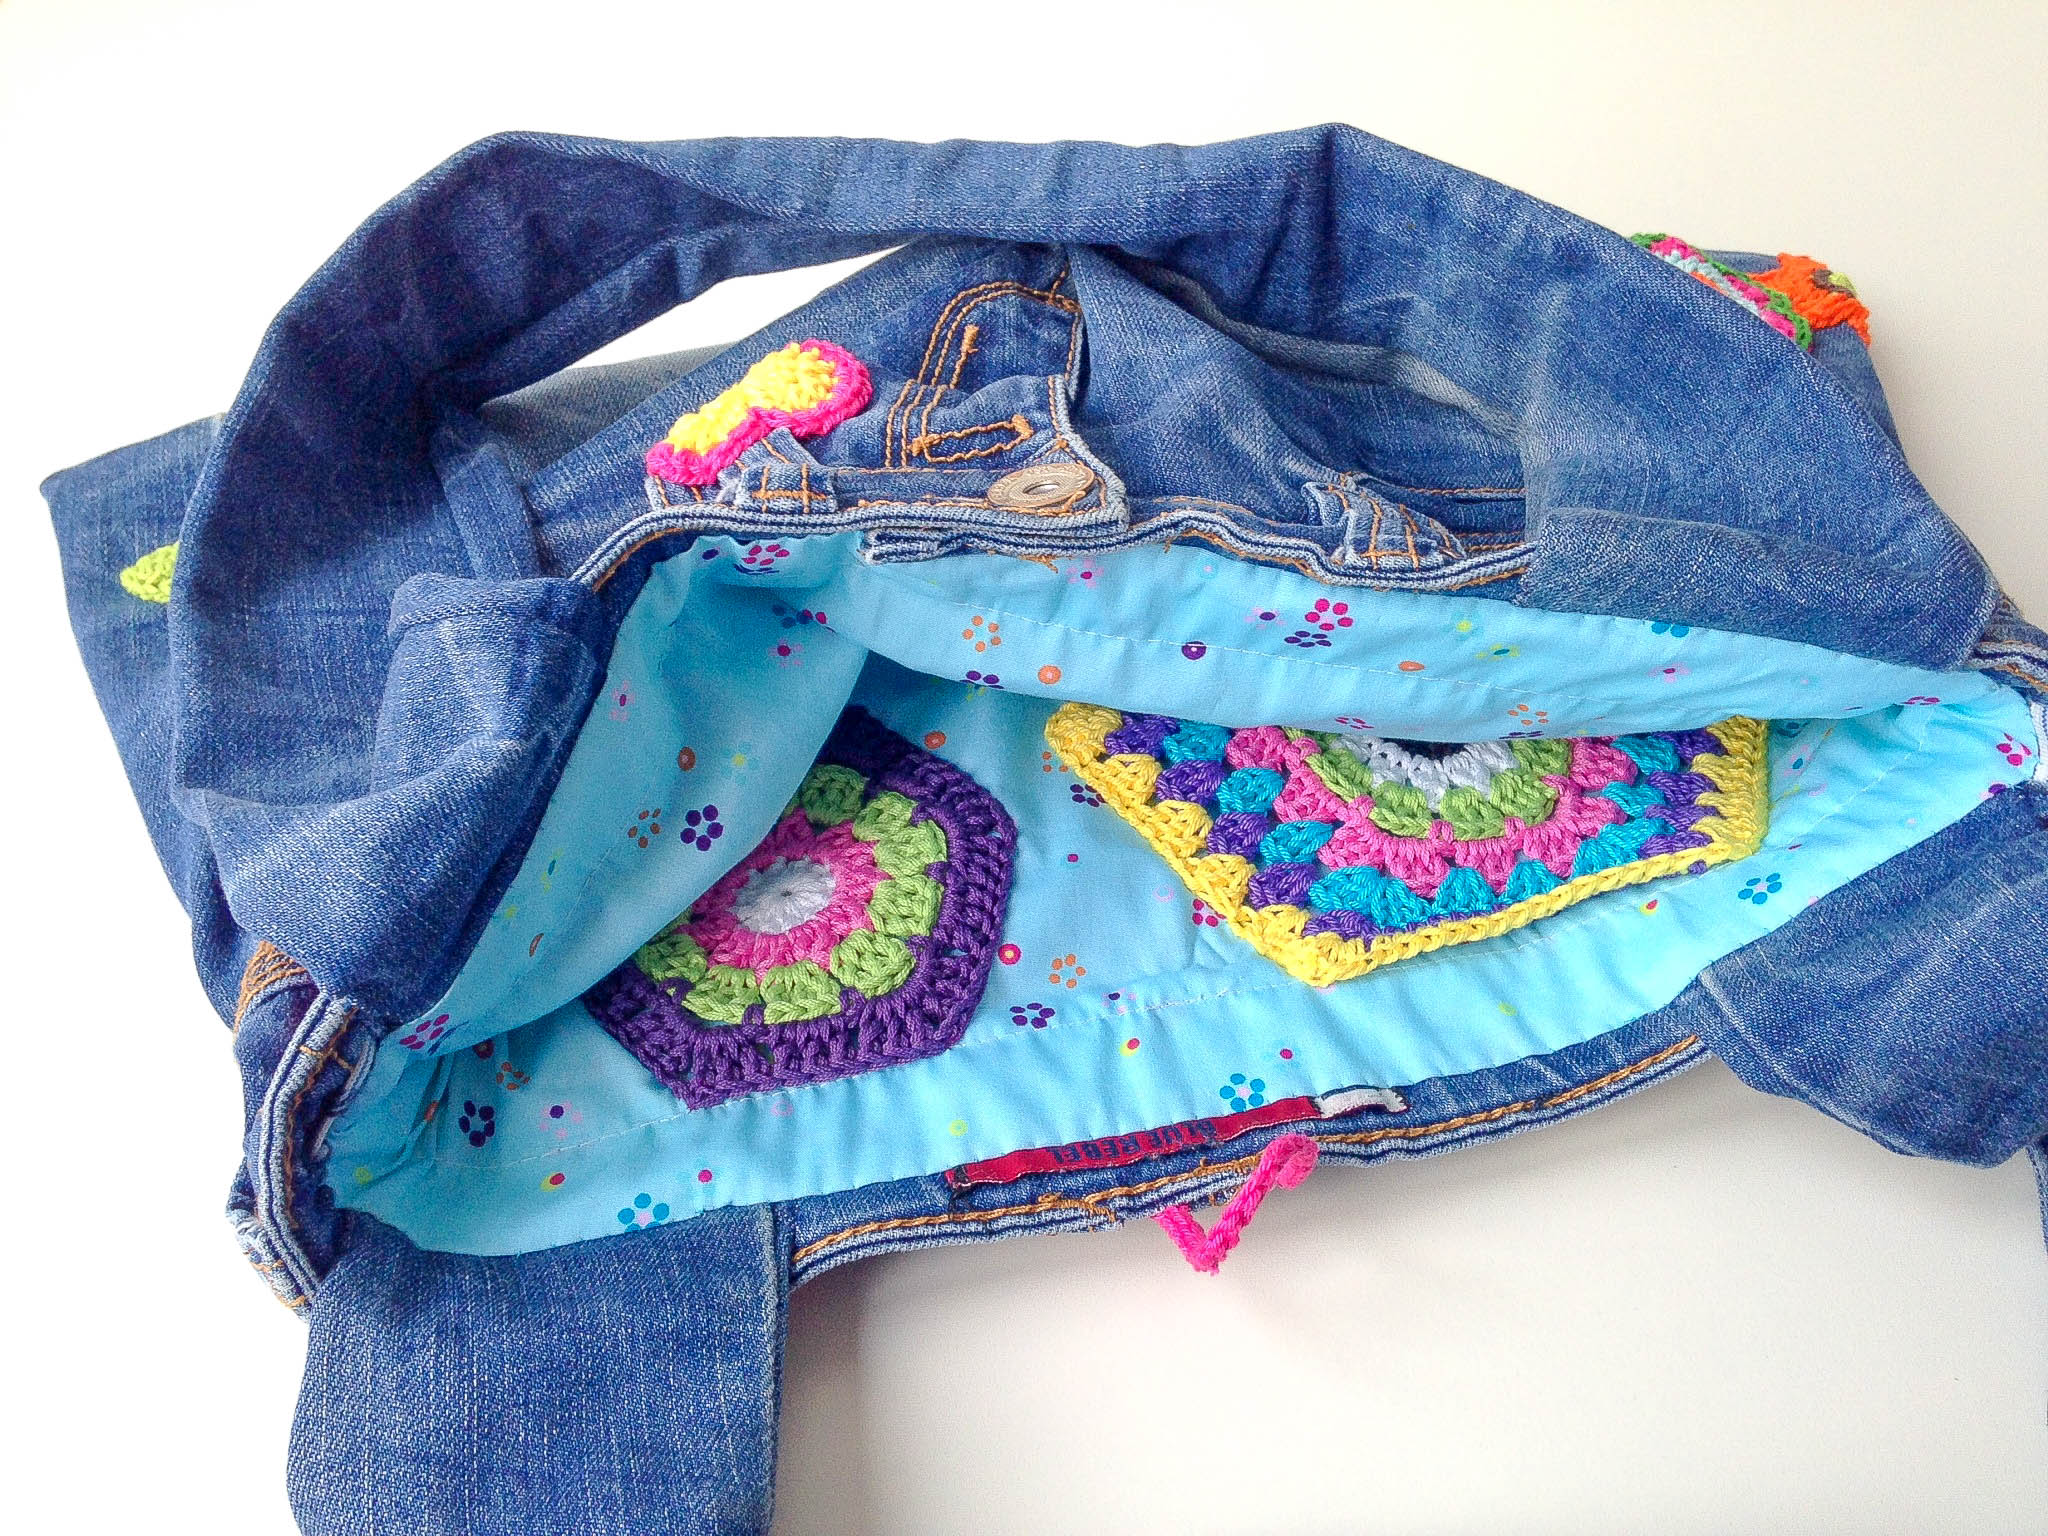 Flower Power Jeans Bag